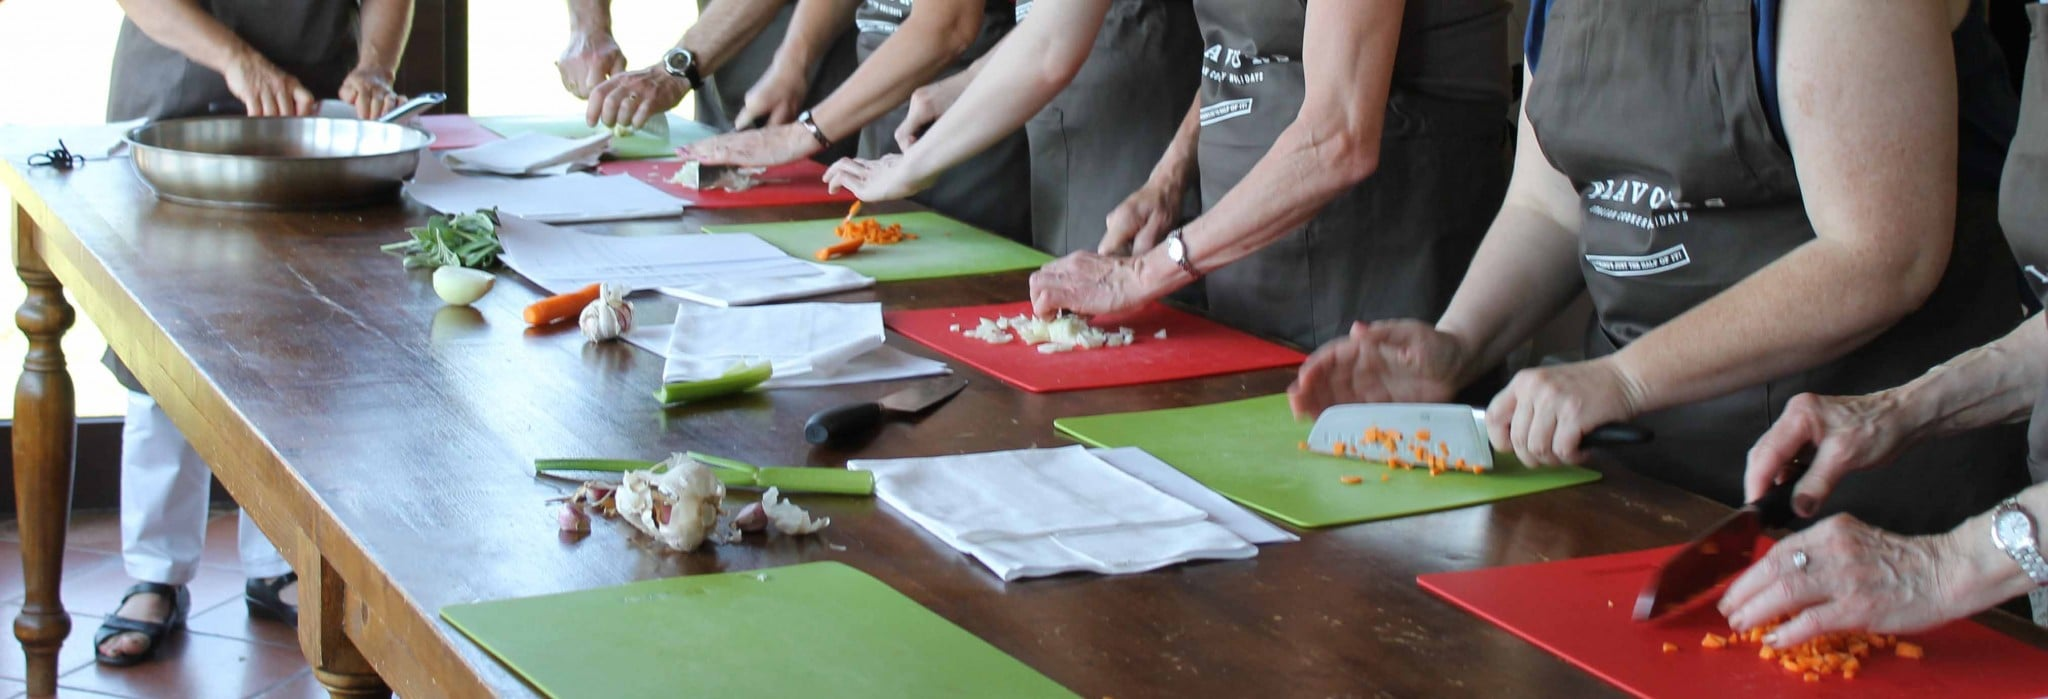 Why anyone can learn to cook italian food flavours holidays most of the hard work is done as a group meaning you dont have to tackle a full recipe by yourself straight away taking on small tasks to prepare a meal solutioingenieria Choice Image